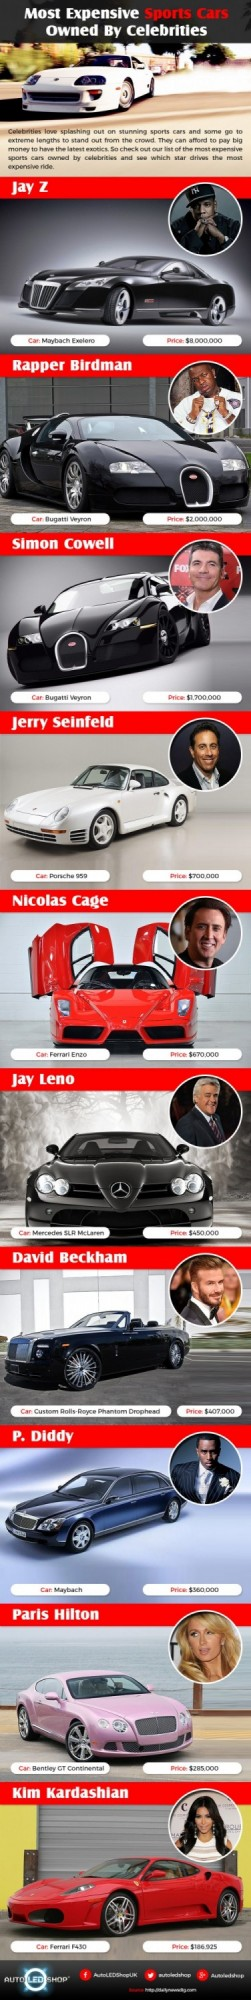 Most Expensive Sports Cars Owned By Celebrities